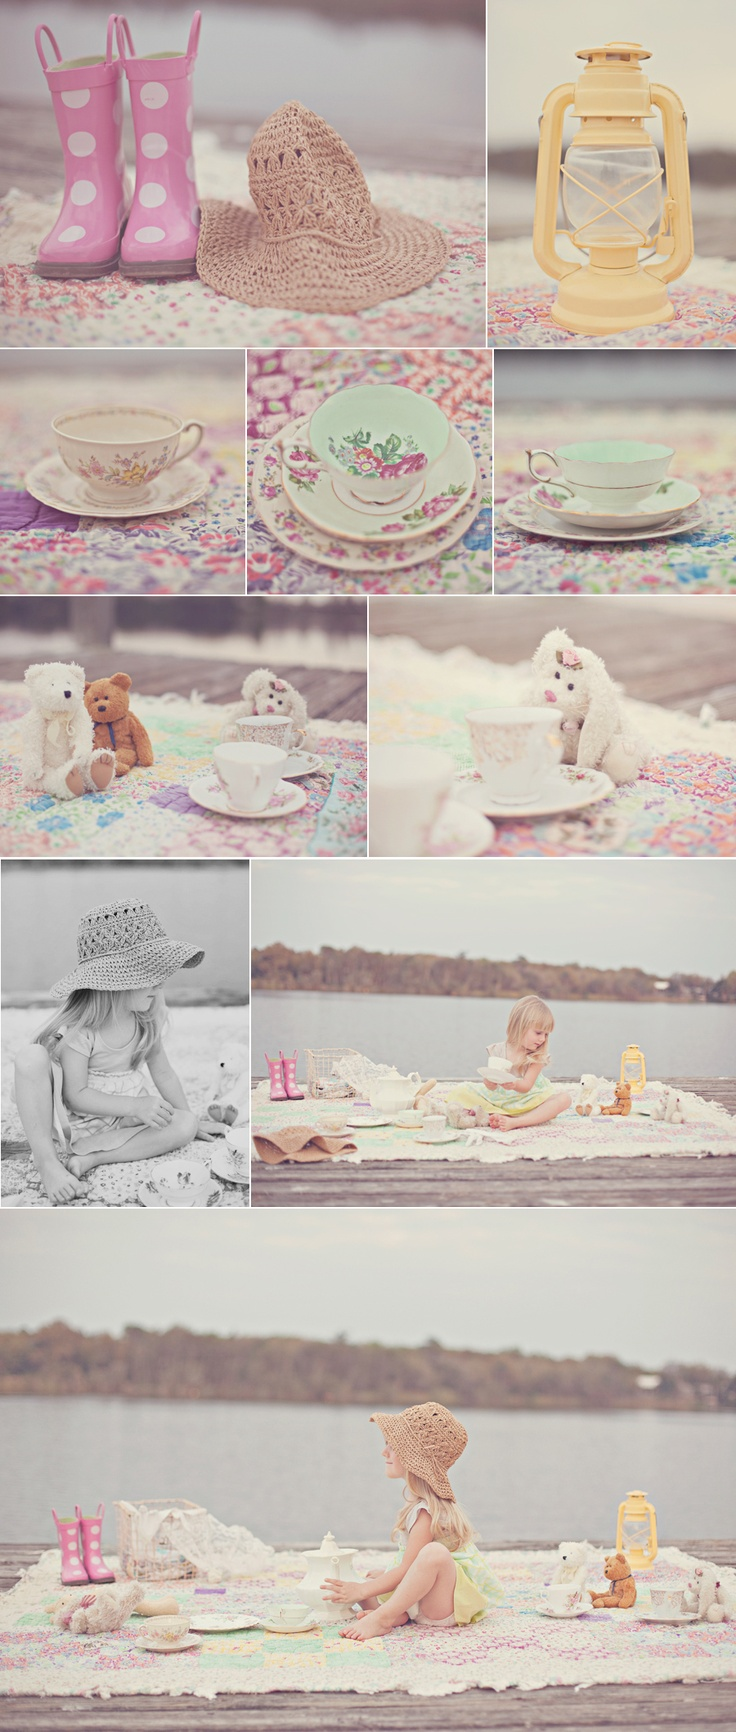 Tea Party on the Dock | Outdoor Photo Session Idea | Prop Ideas | Child Photography | Summer